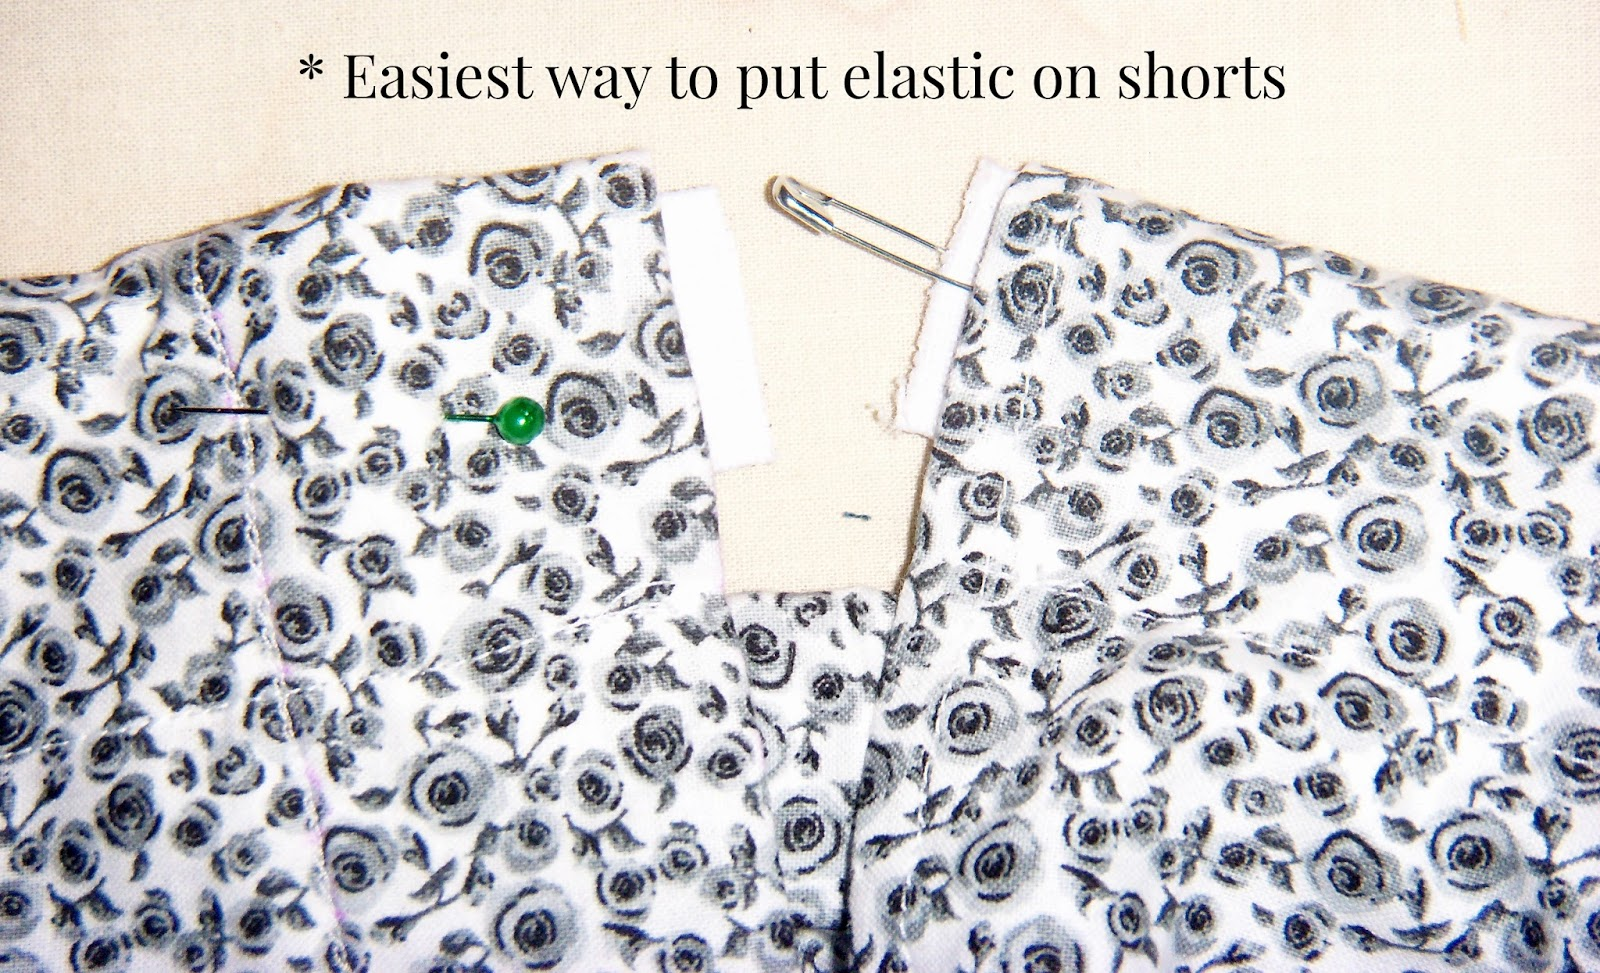 The safety pin elastic method